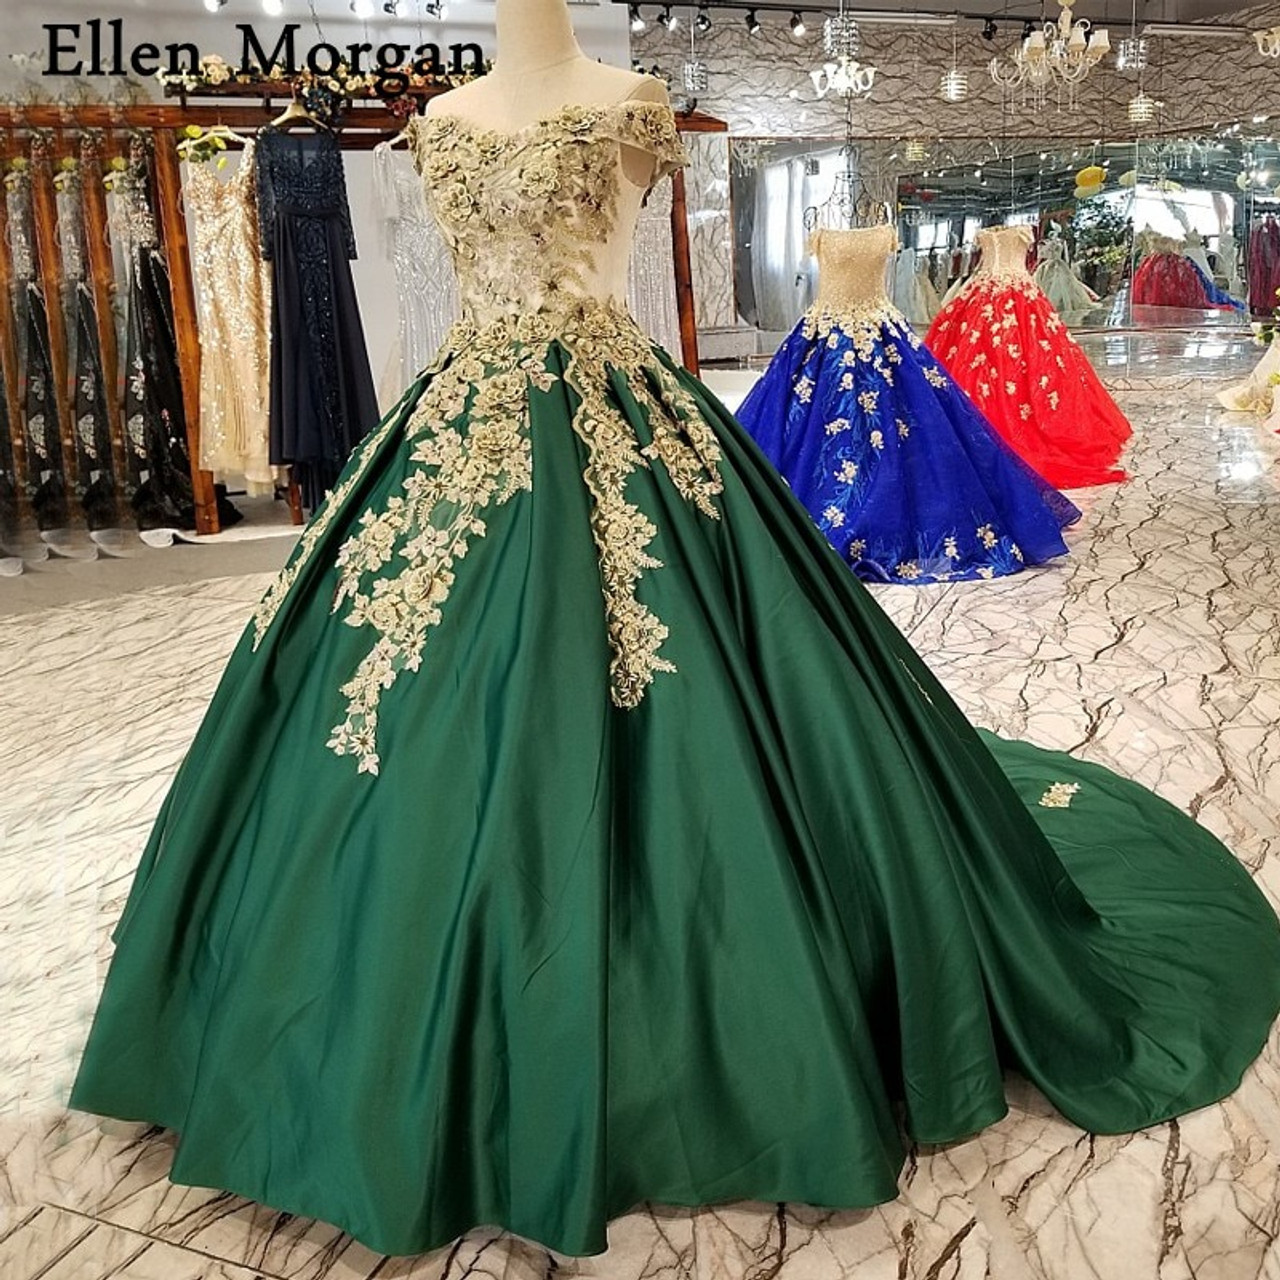 201c6bb5562c7 Dark Green Satin Ball Gowns Wedding Dresses 3D Flowers Lace Pearls for  Women Garden Real Photos Puffy Long Bridal Gowns 2018